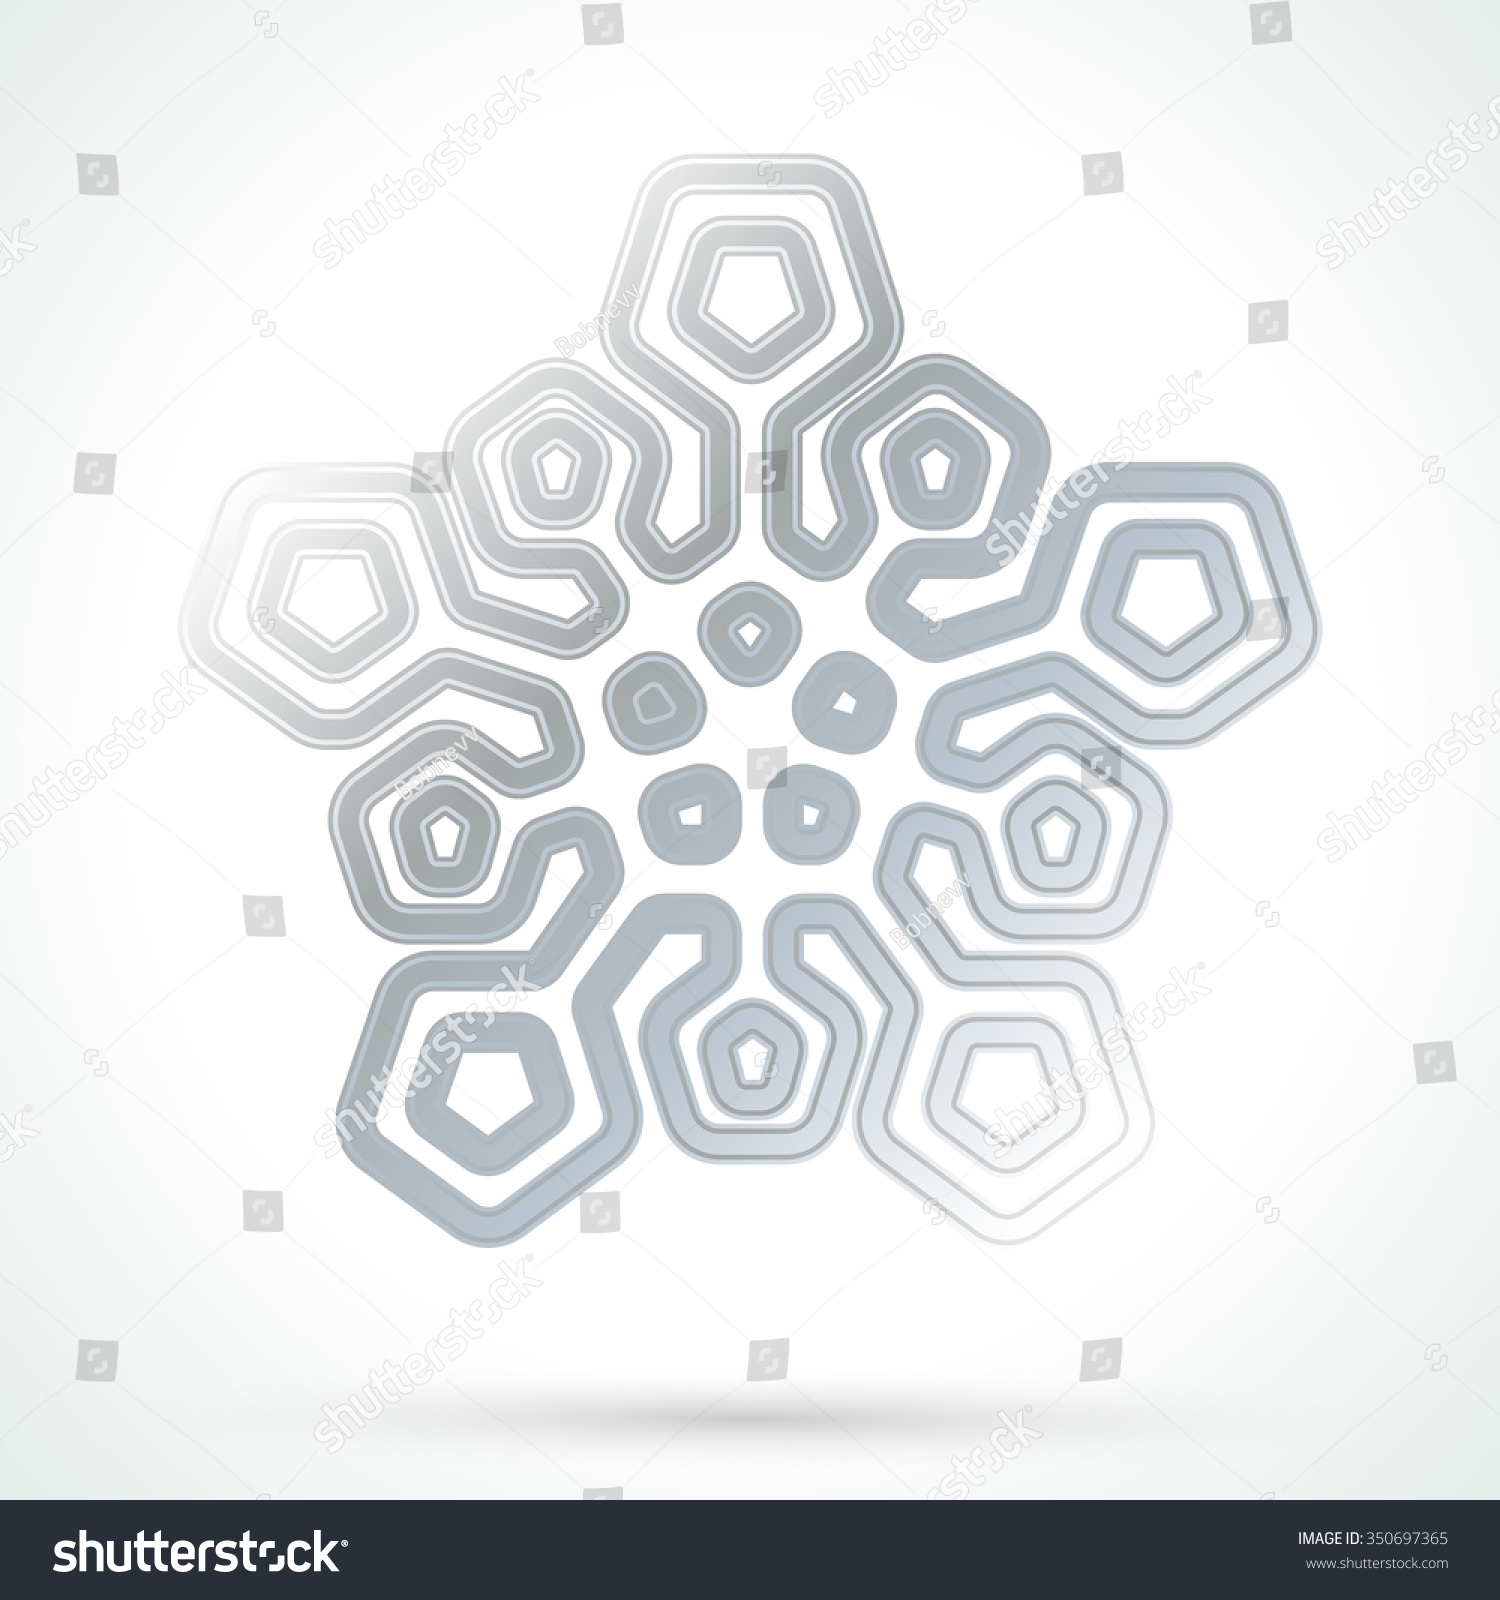 Silver snowflake icon abstract winter symbol stock vector silver snowflake icon abstract winter symbol decorative element for brochure flyer greeting buycottarizona